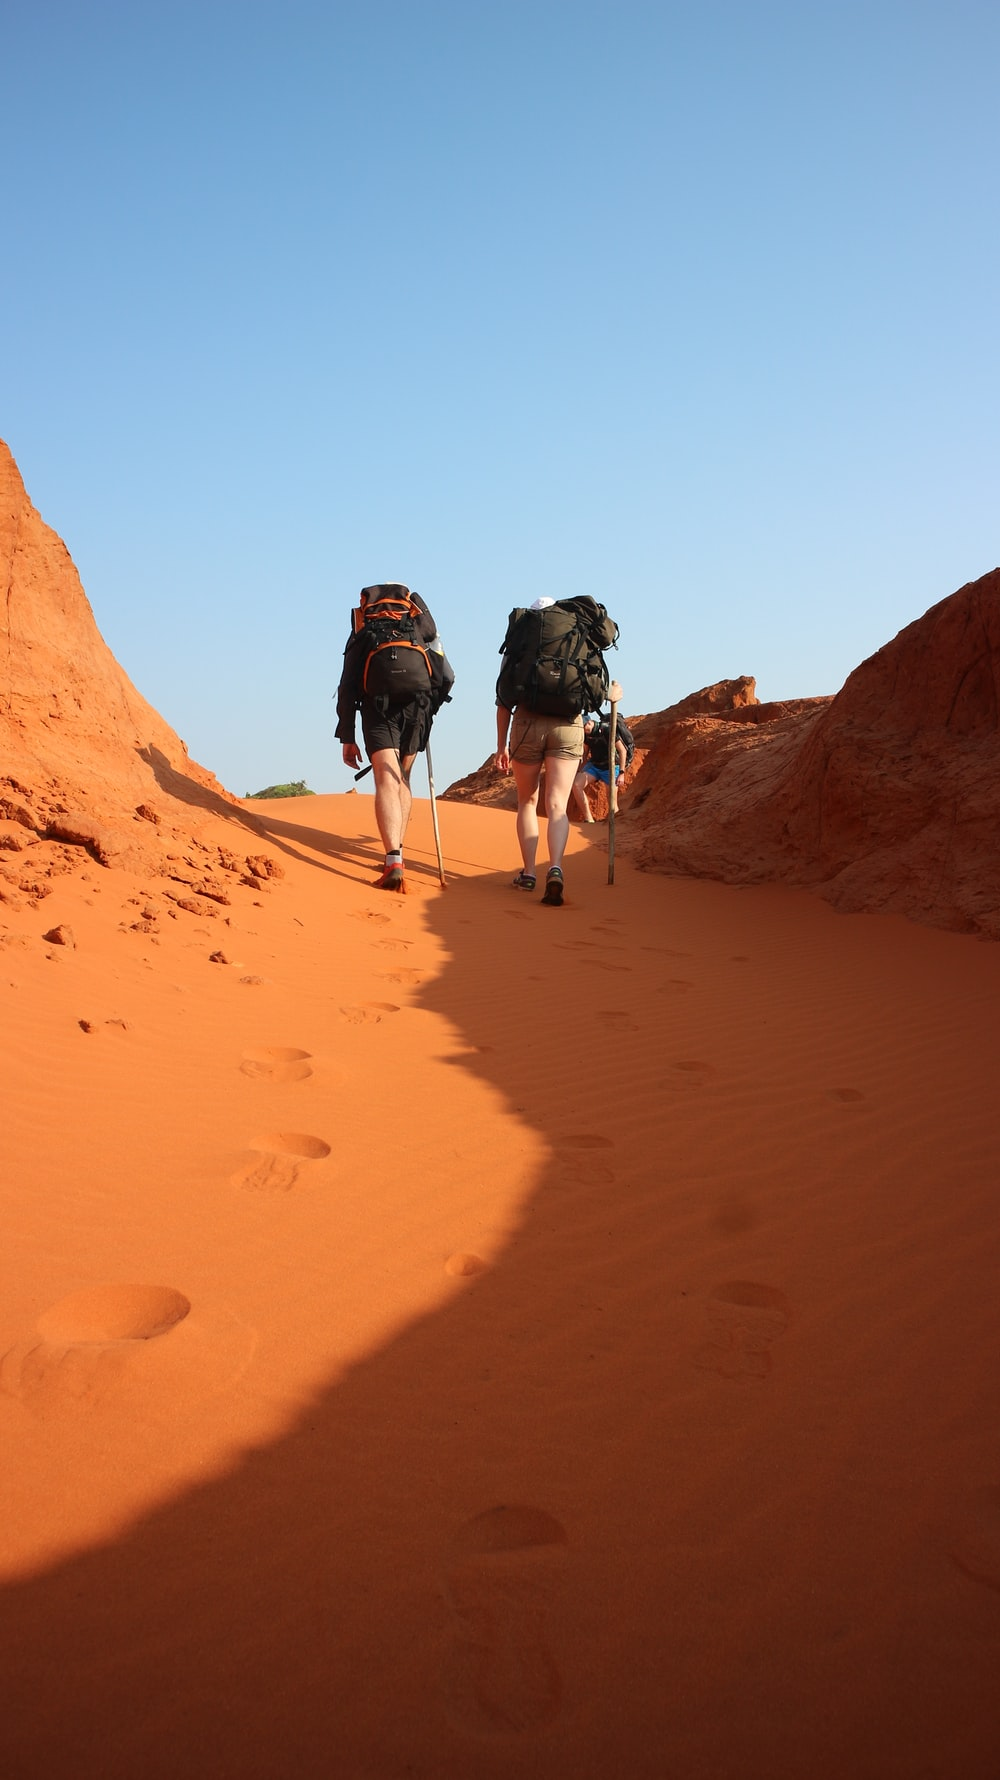 two person hiking on desert during daytime